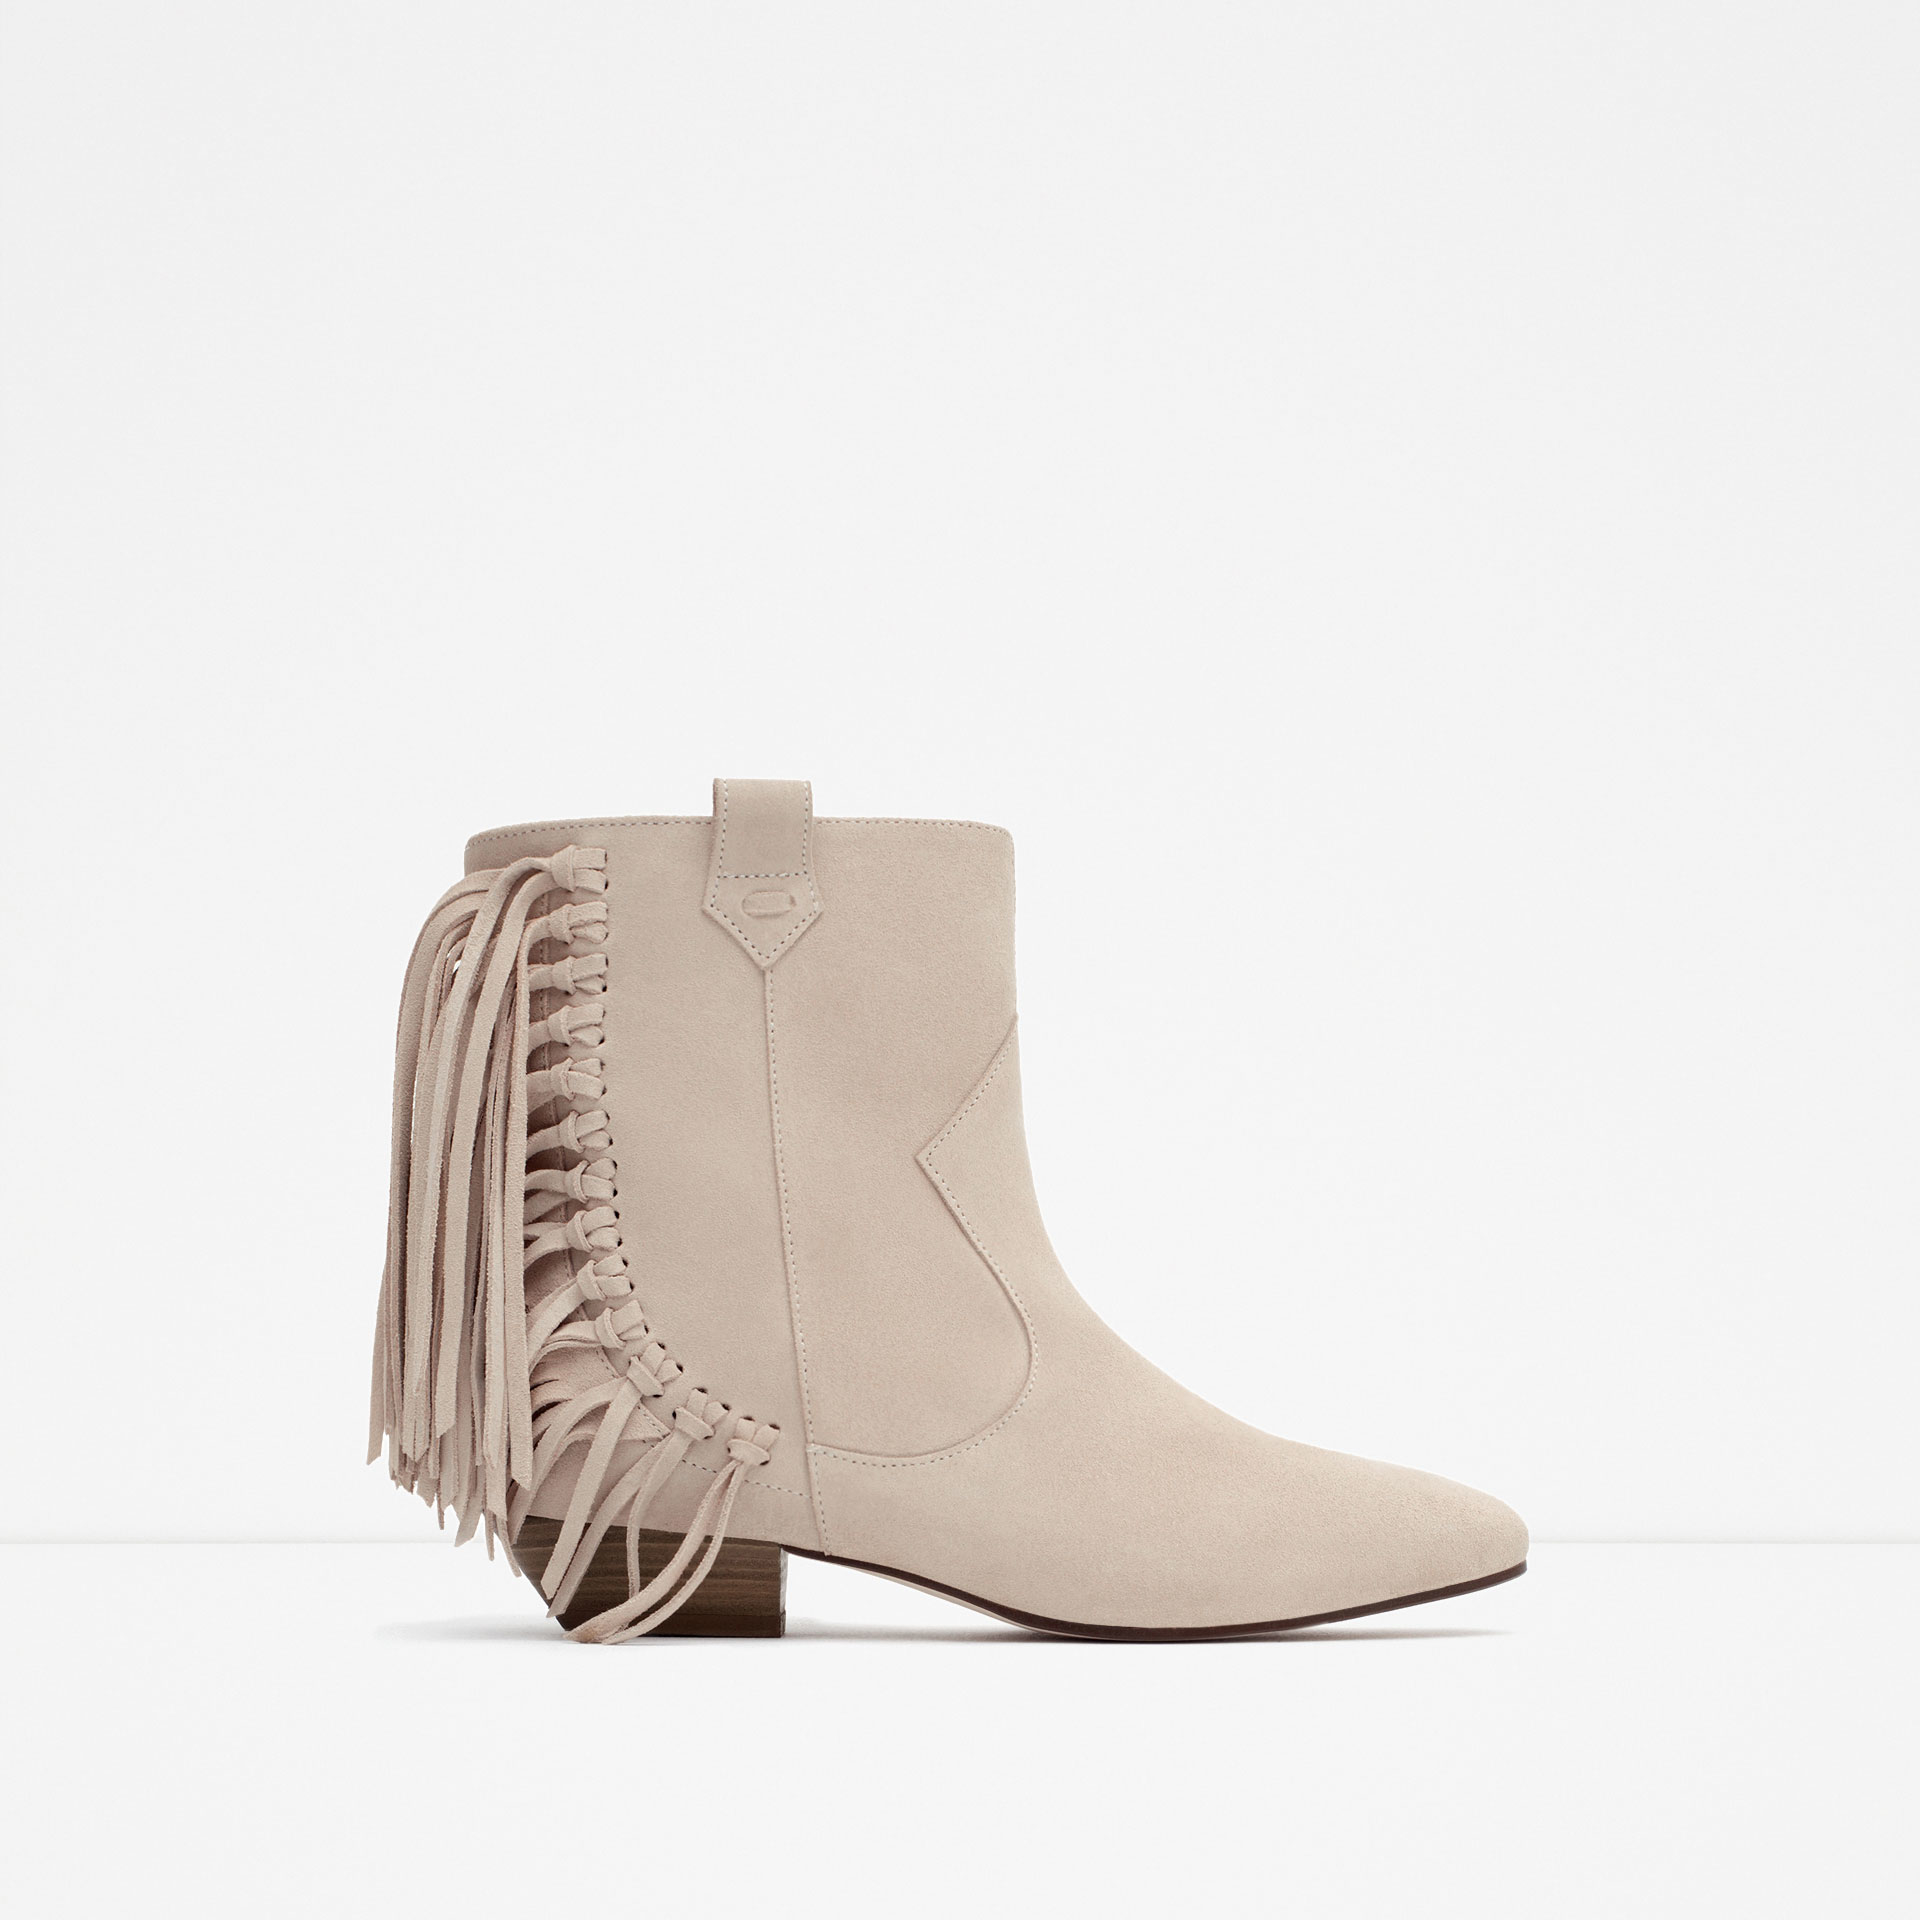 Zara Flat Leather Ankle Boots With Fringe in Natural | Lyst